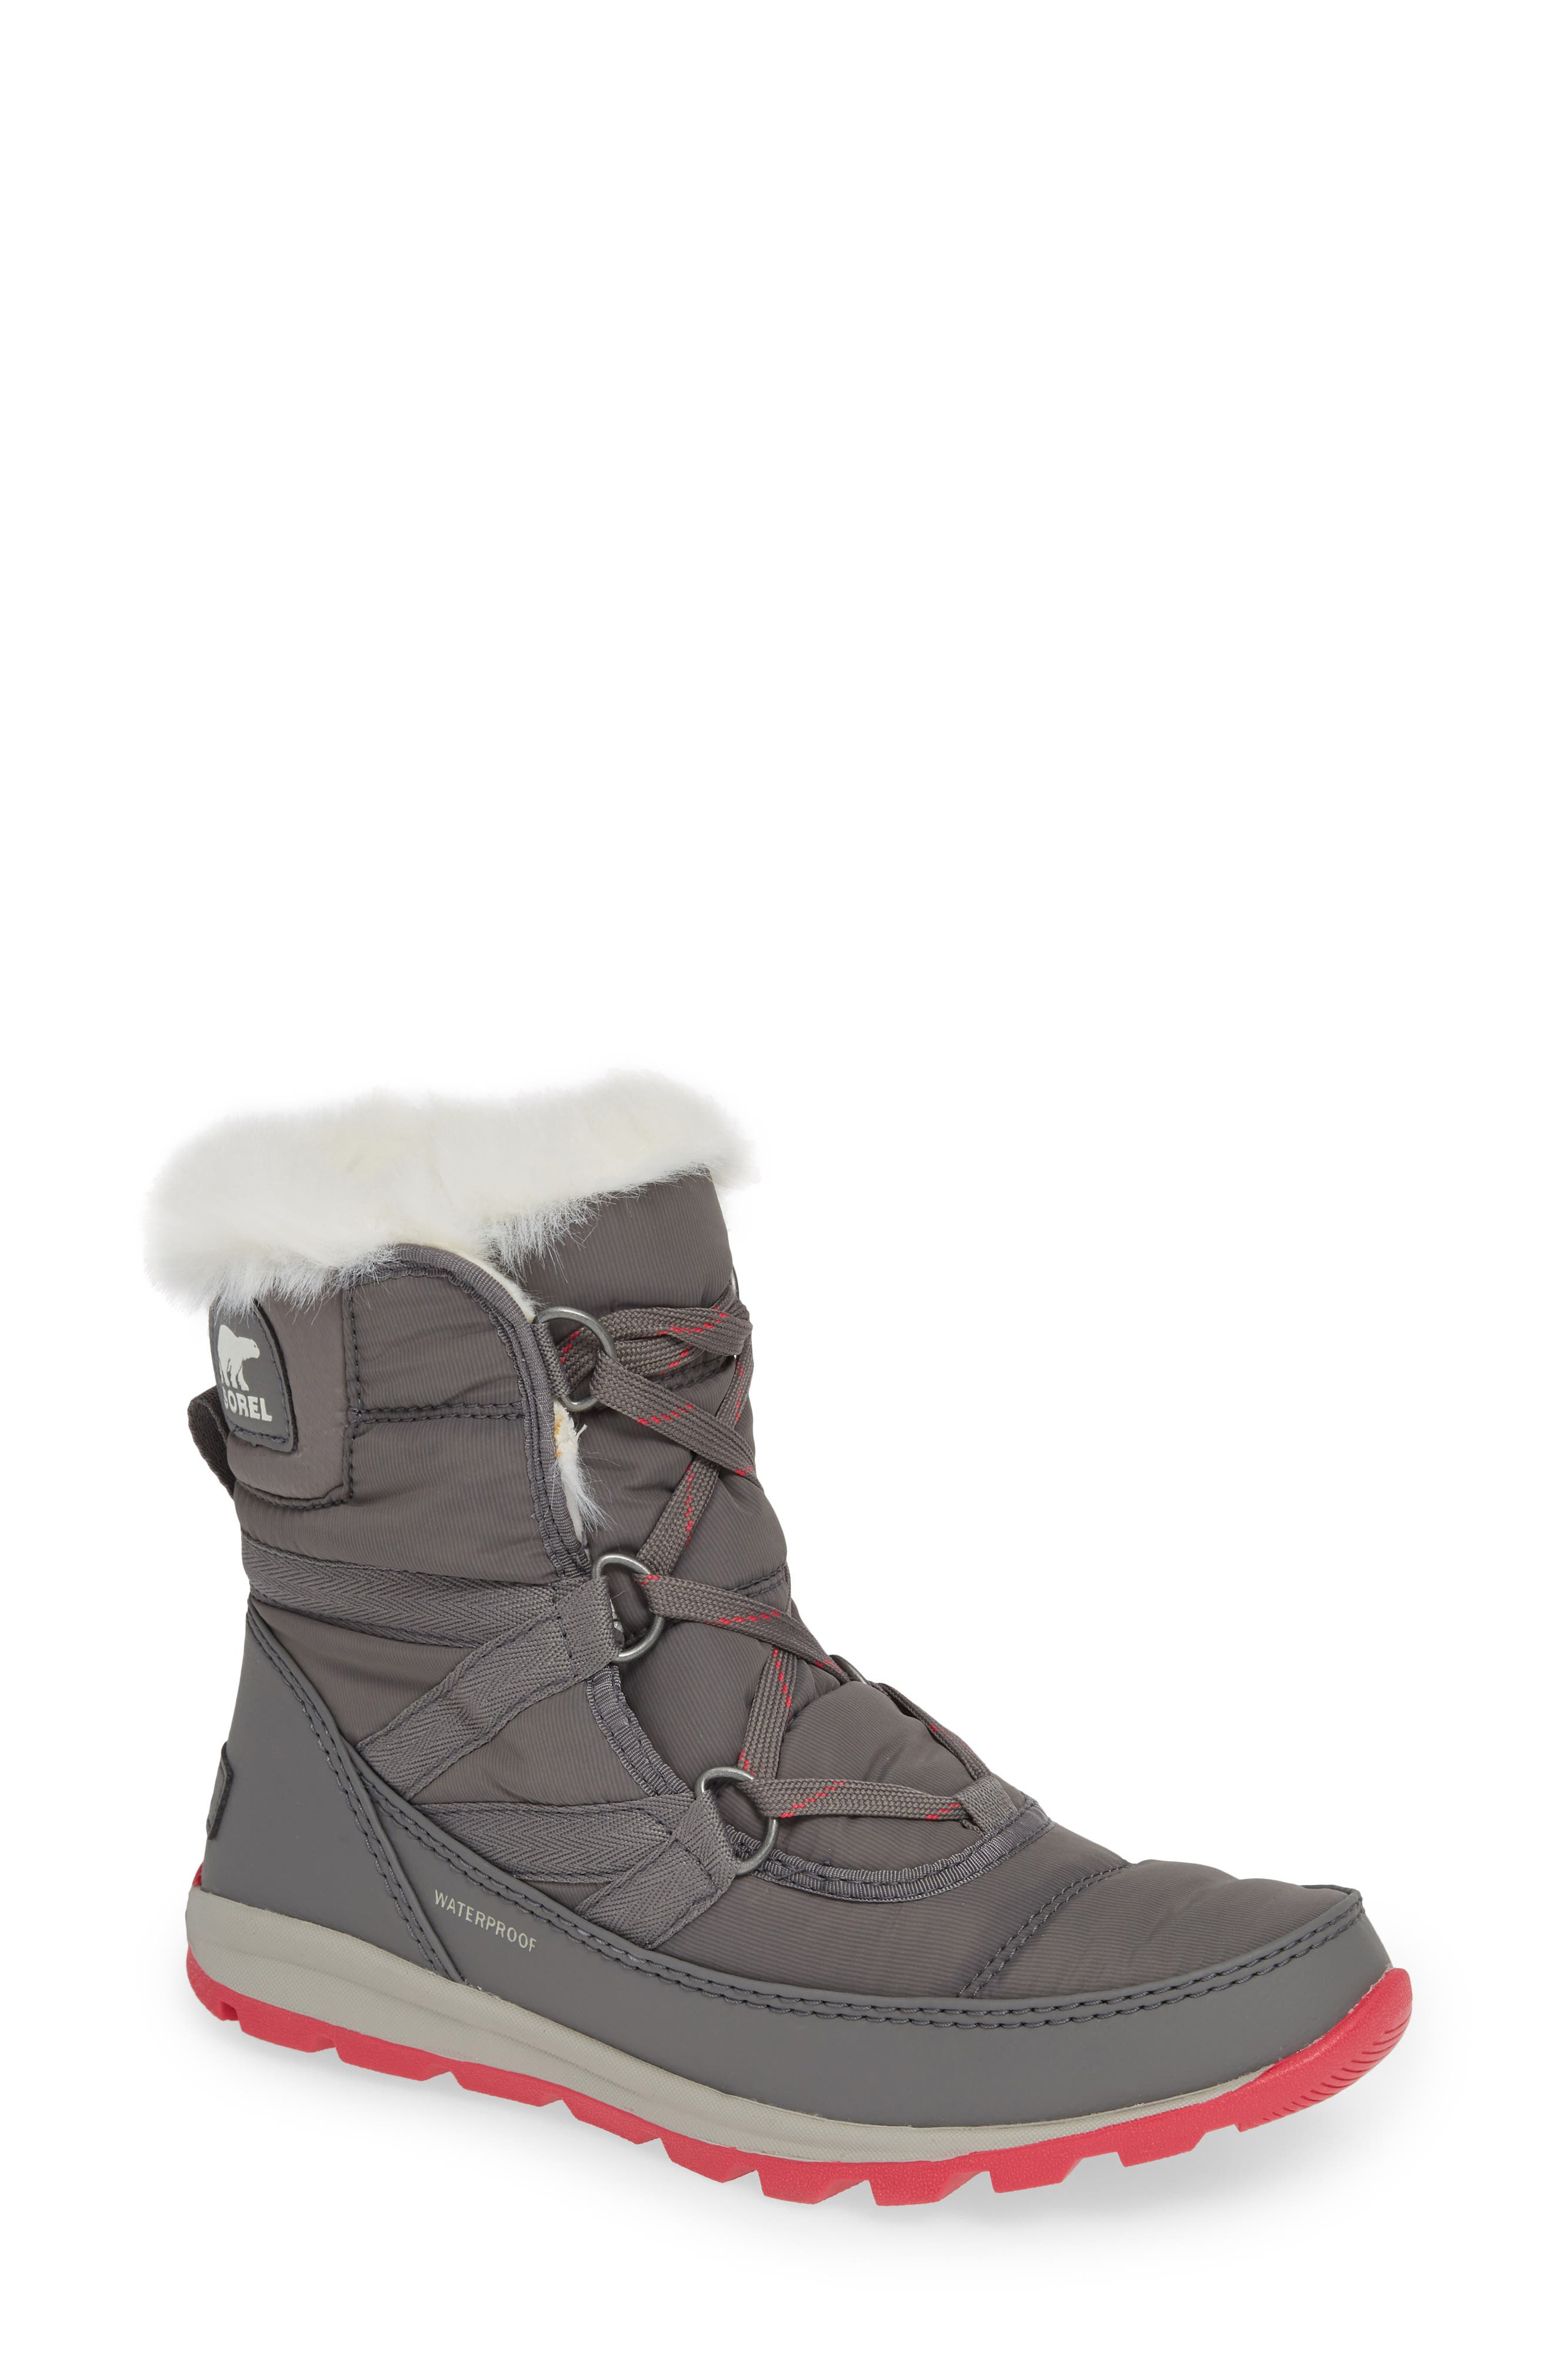 Whitney Snow Bootie,                             Main thumbnail 1, color,                             053